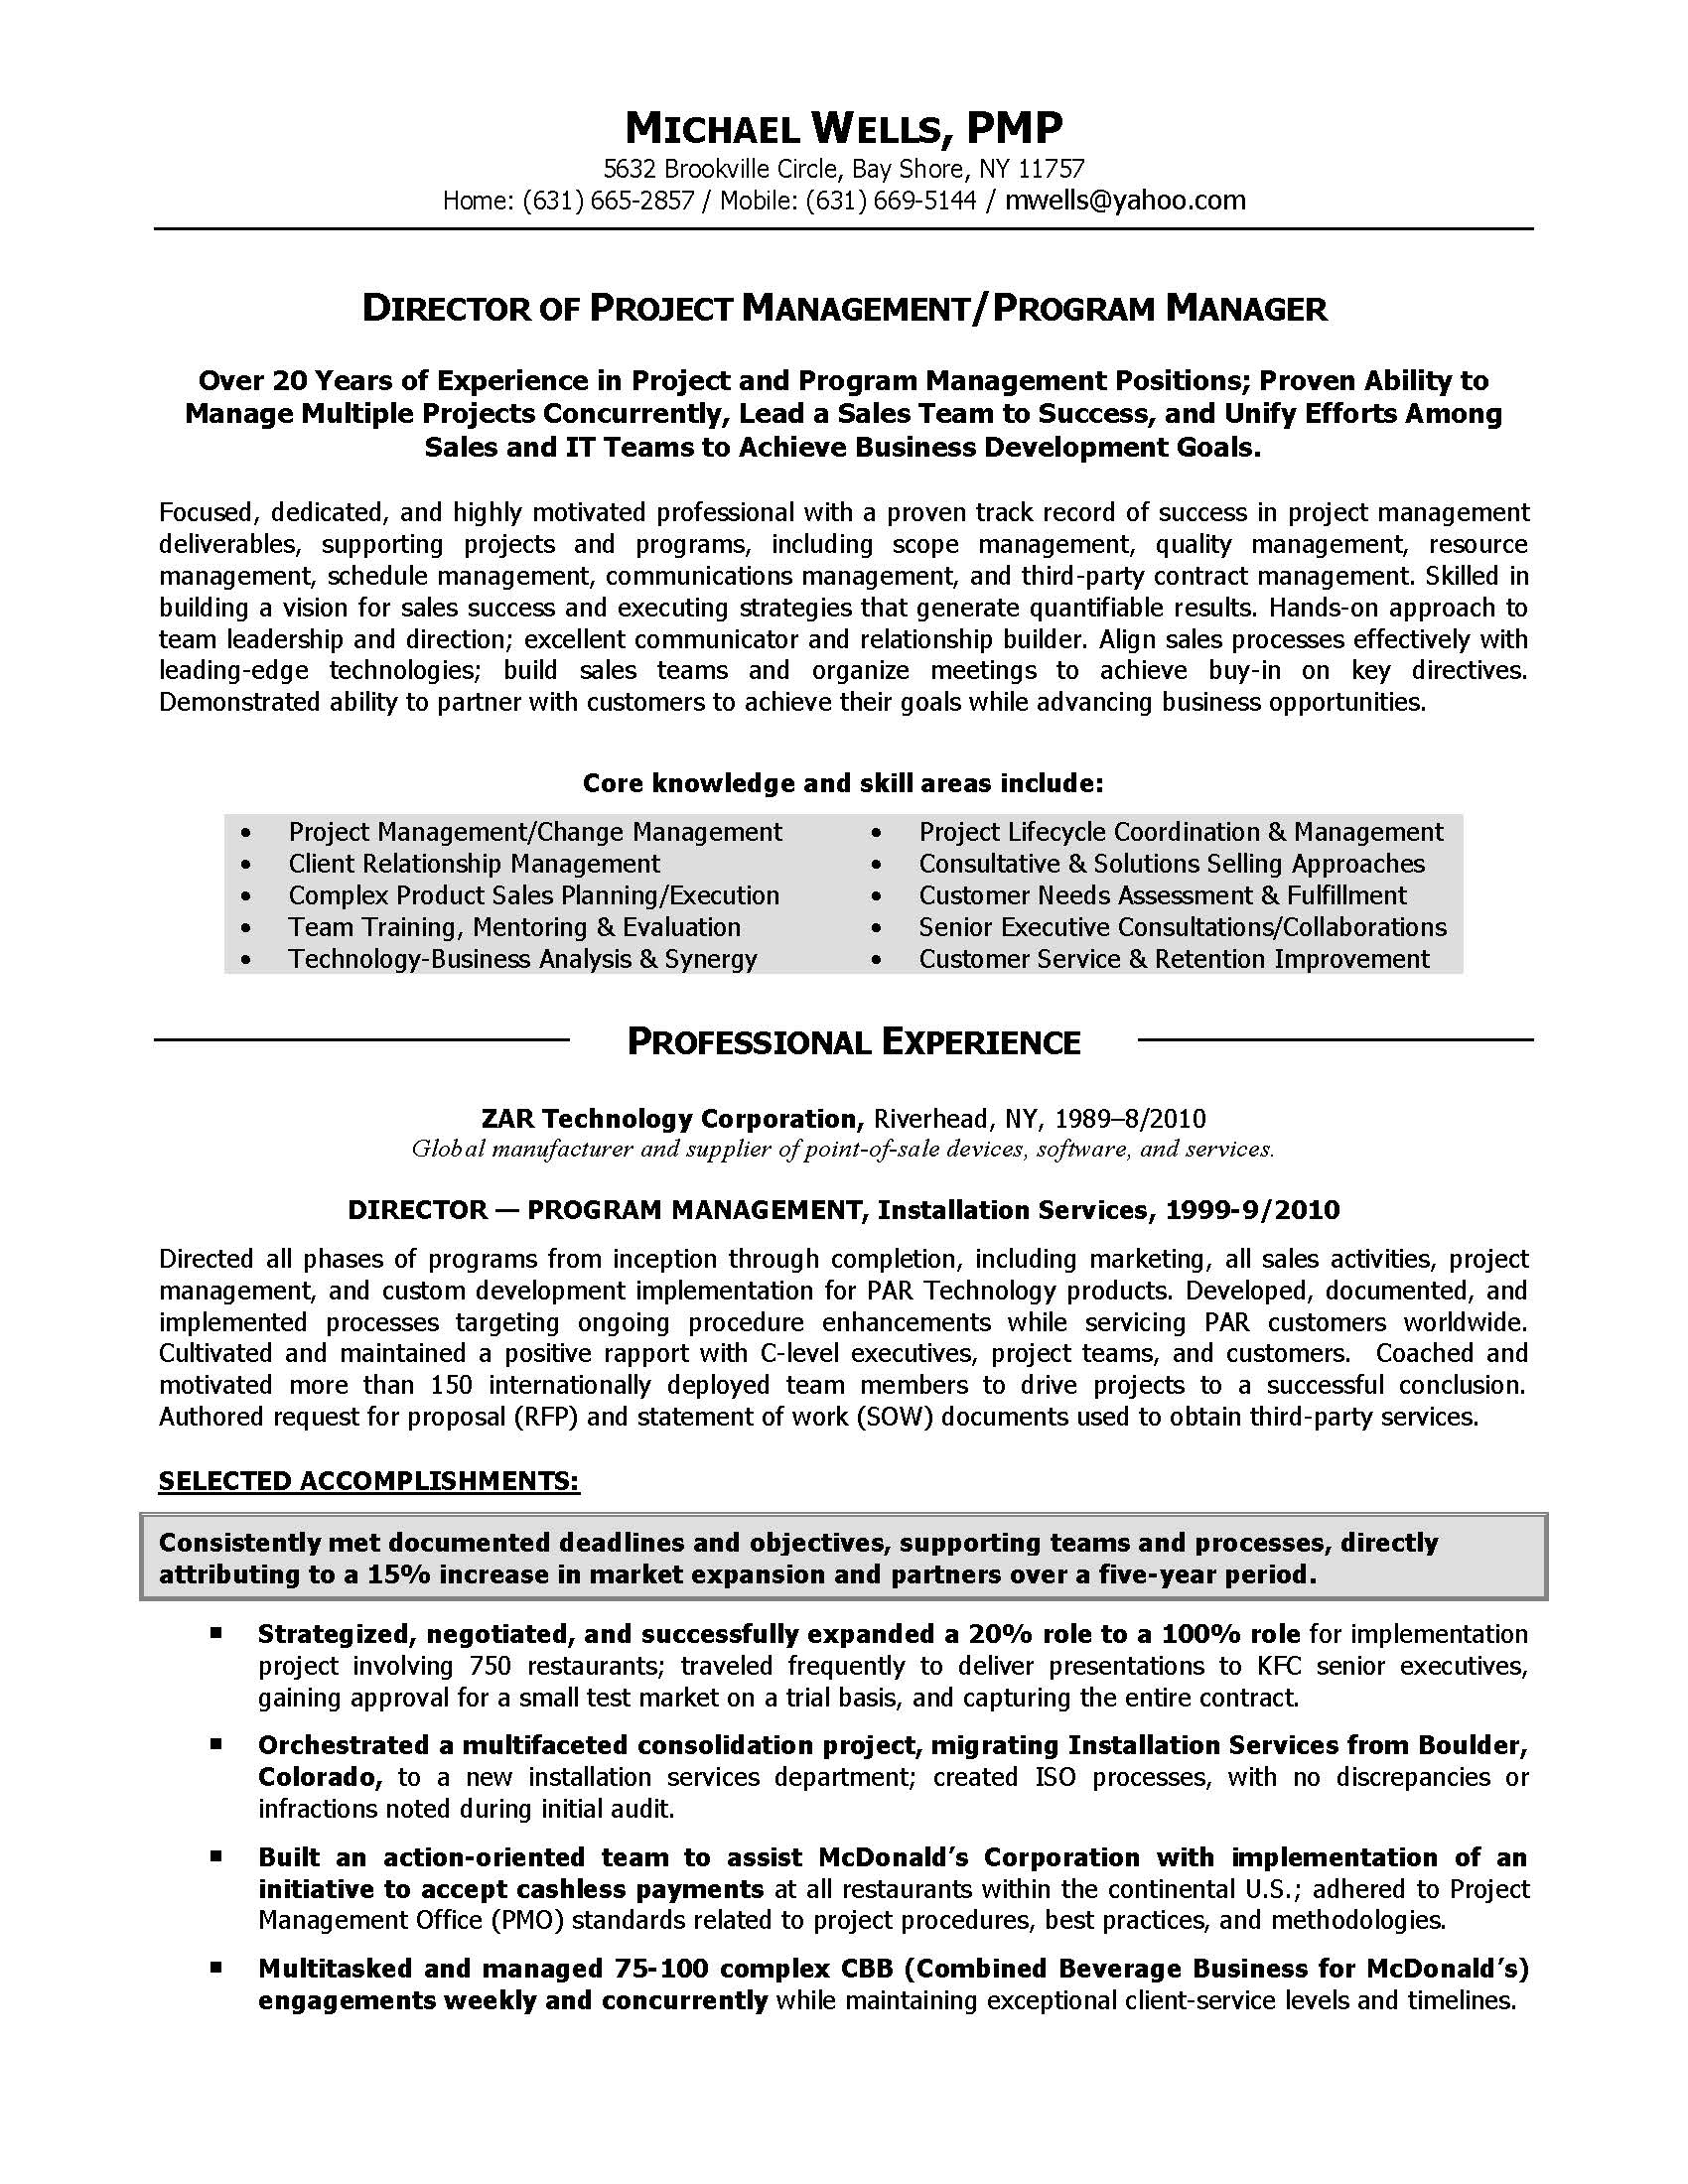 resume samples elite resume writing project management director resume sample provided by elite resume writing services - Clinical Officer Sample Resume